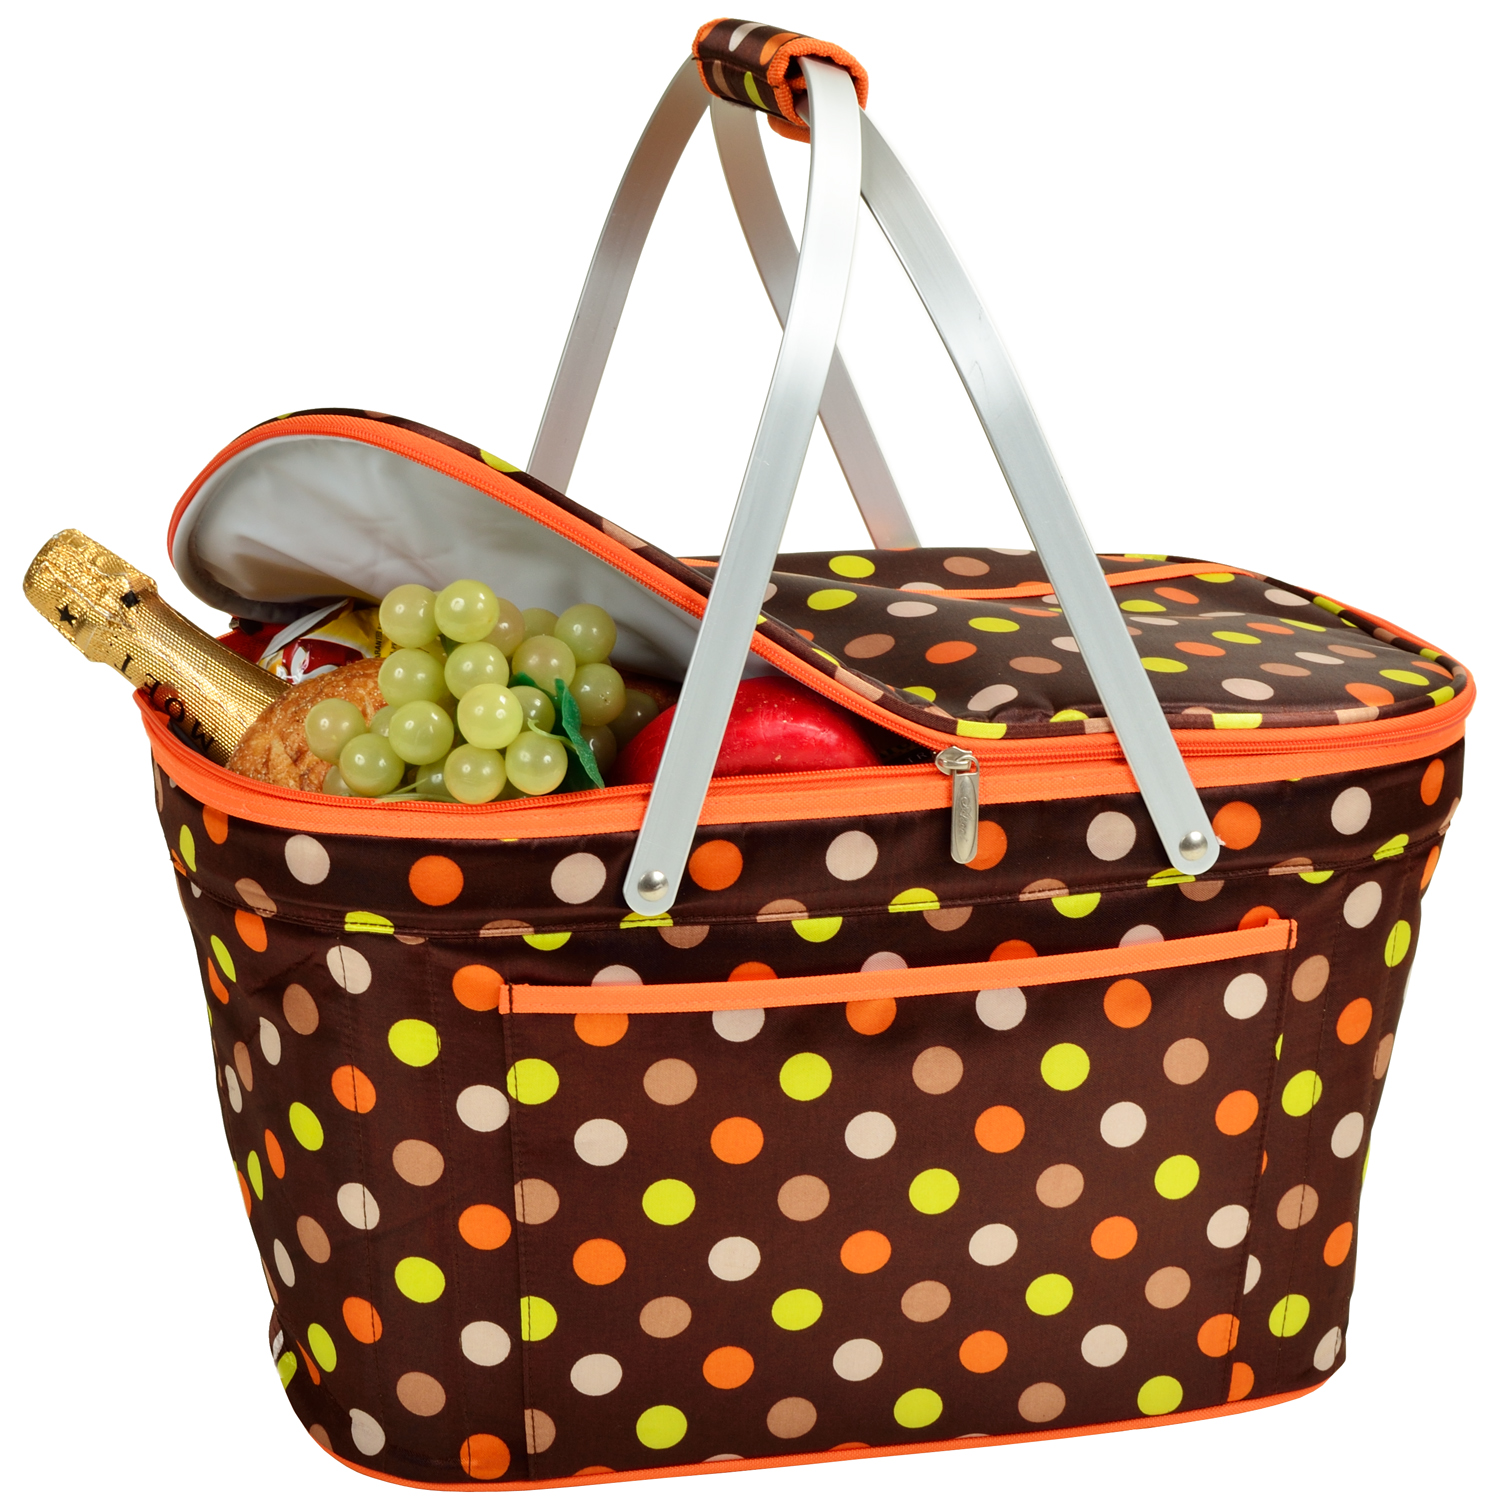 Fancy picnic basket clipart png freeuse library 68 What I Can Do With A Picnic Basket, Picnic Themed Gift Set ... png freeuse library